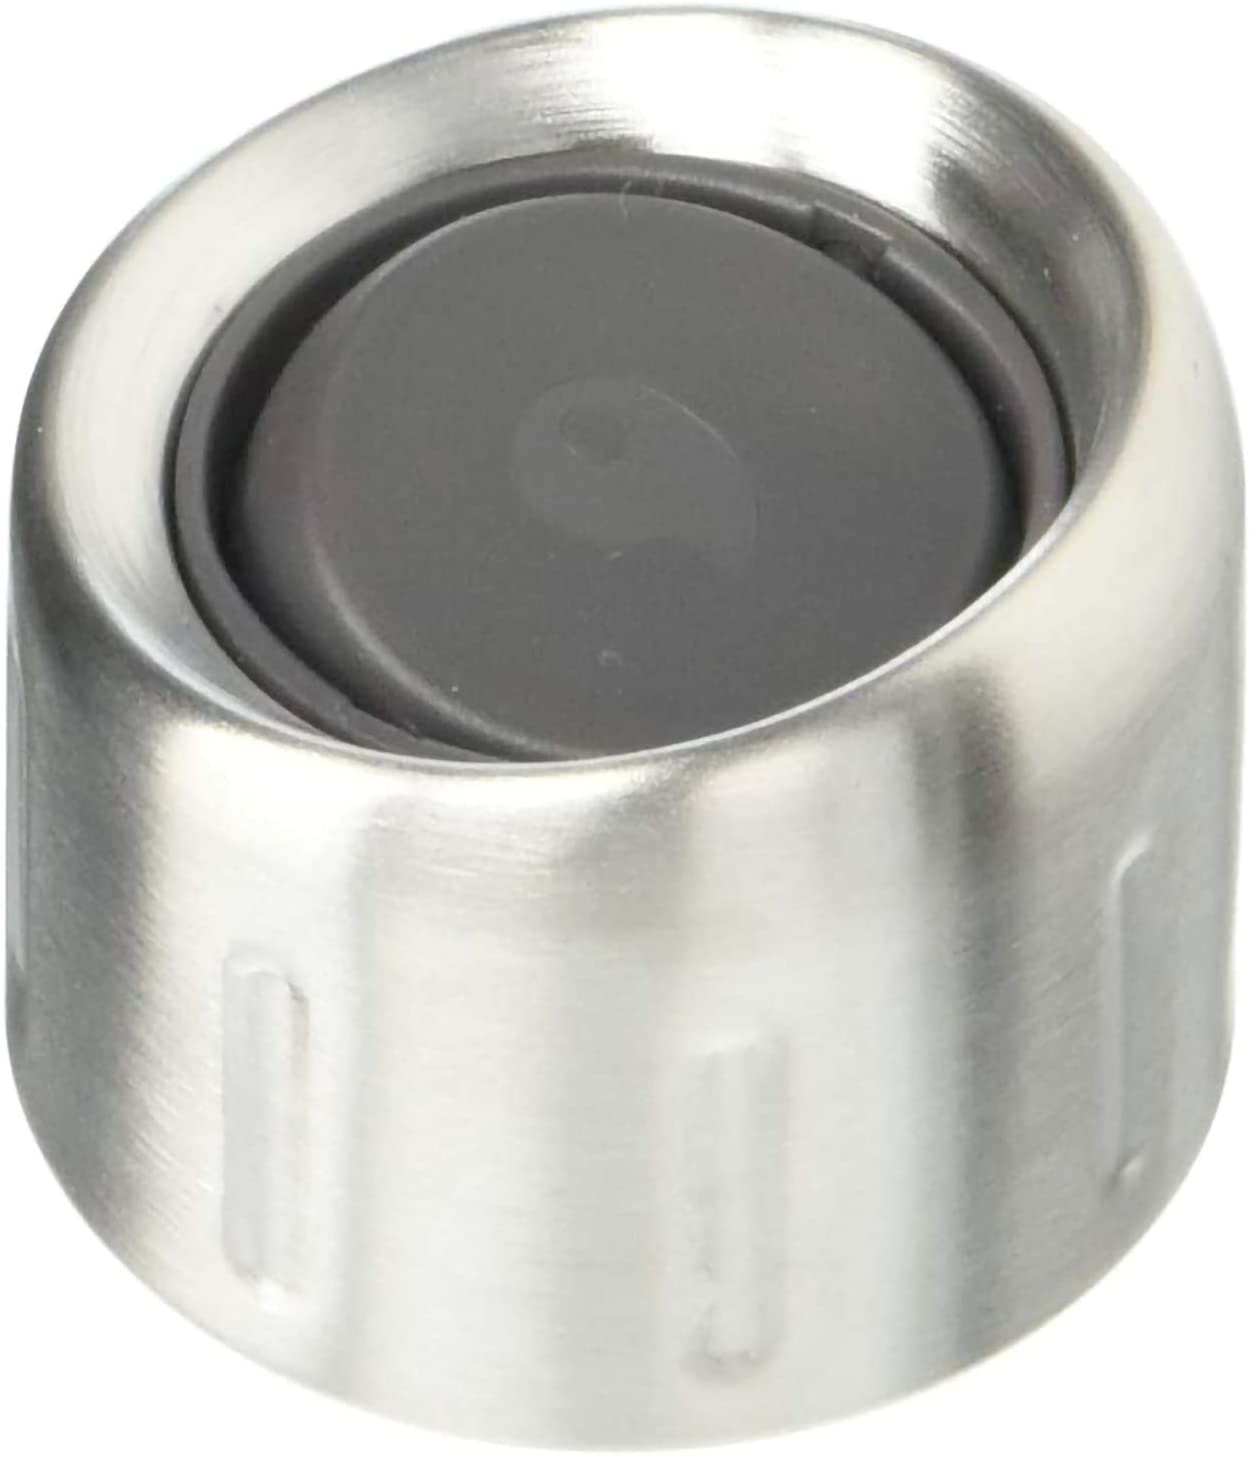 S'well Cap - 9 Fl Oz - Stainless Steel: Kitchen & Dining